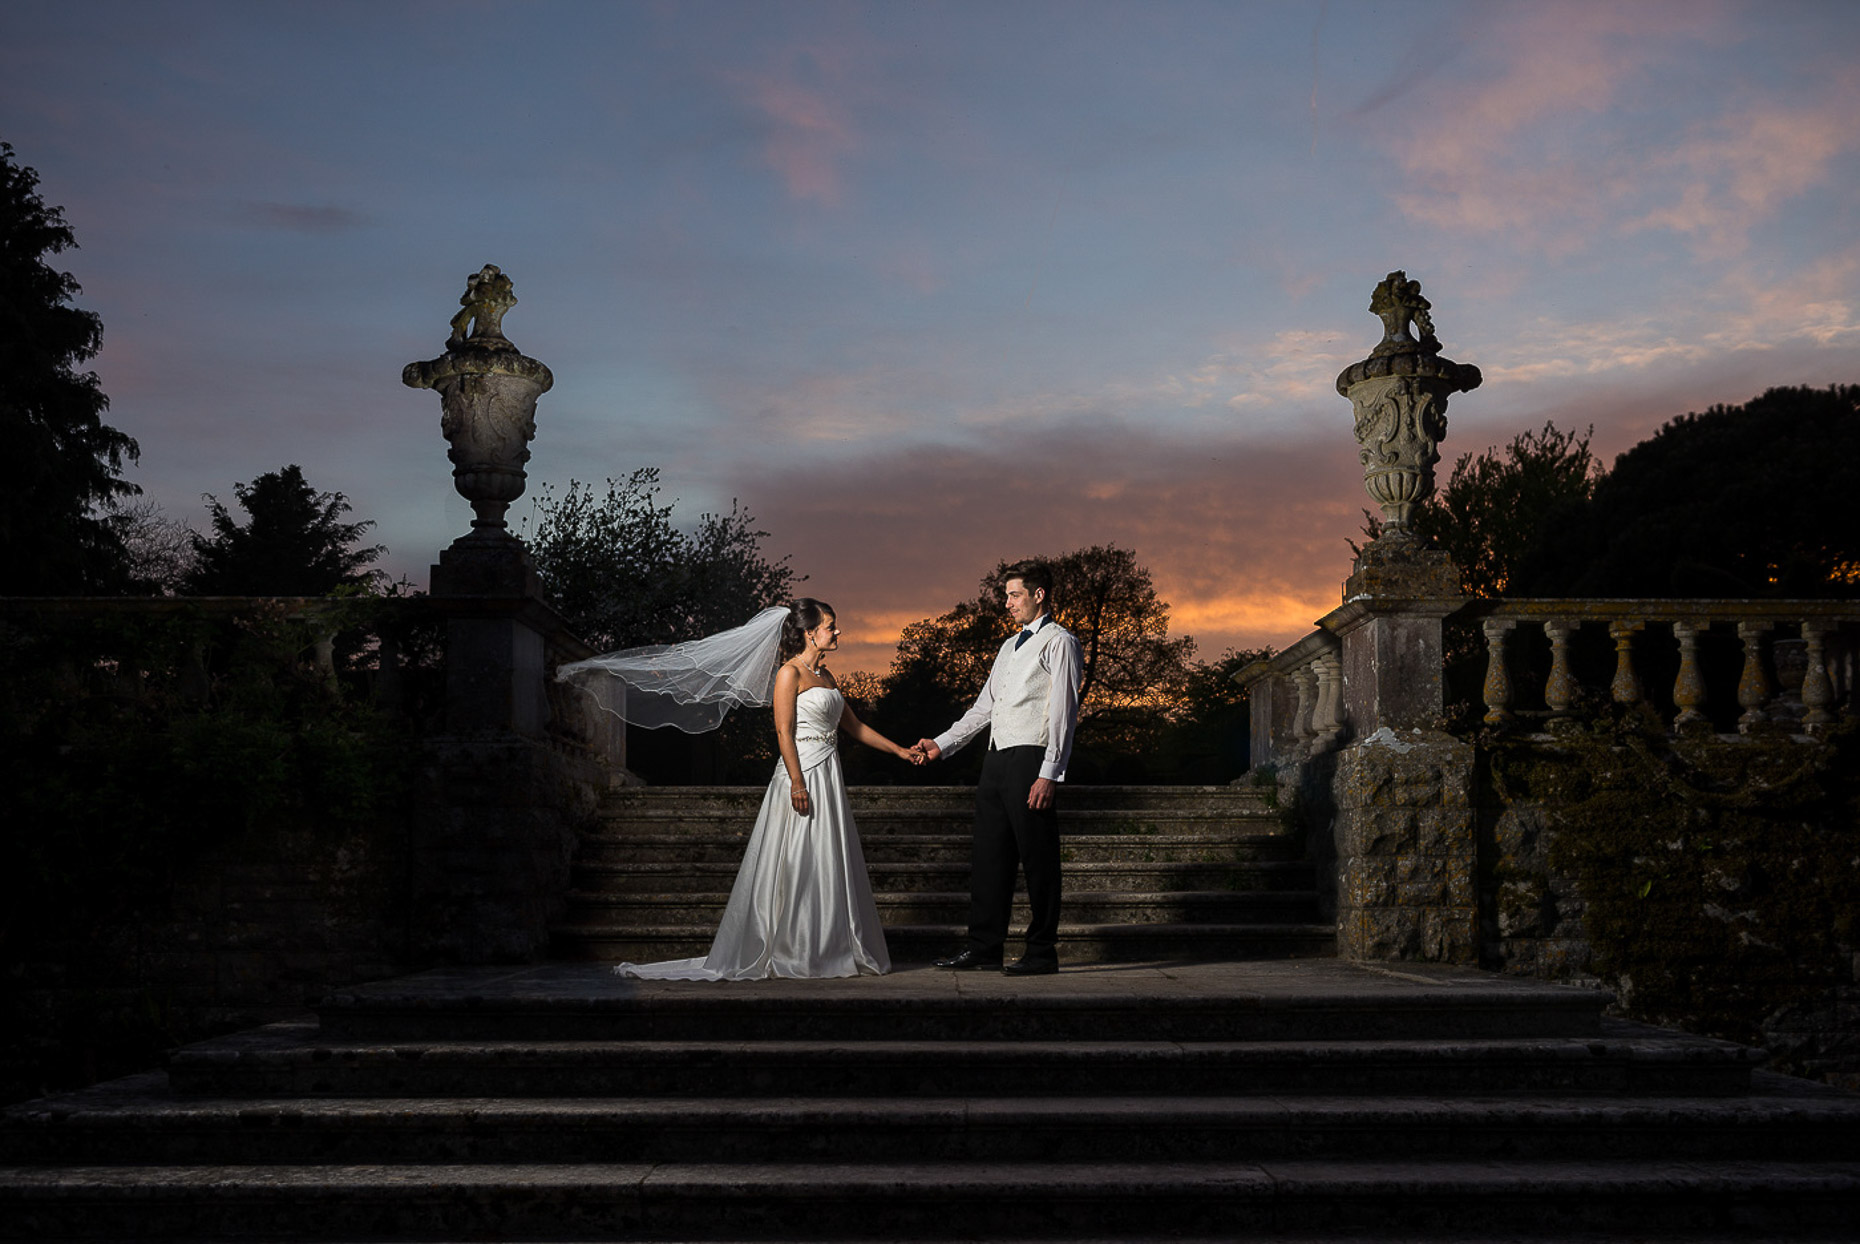 leah-rossi-kingston-maurward-dorset-weddings-twilight-06